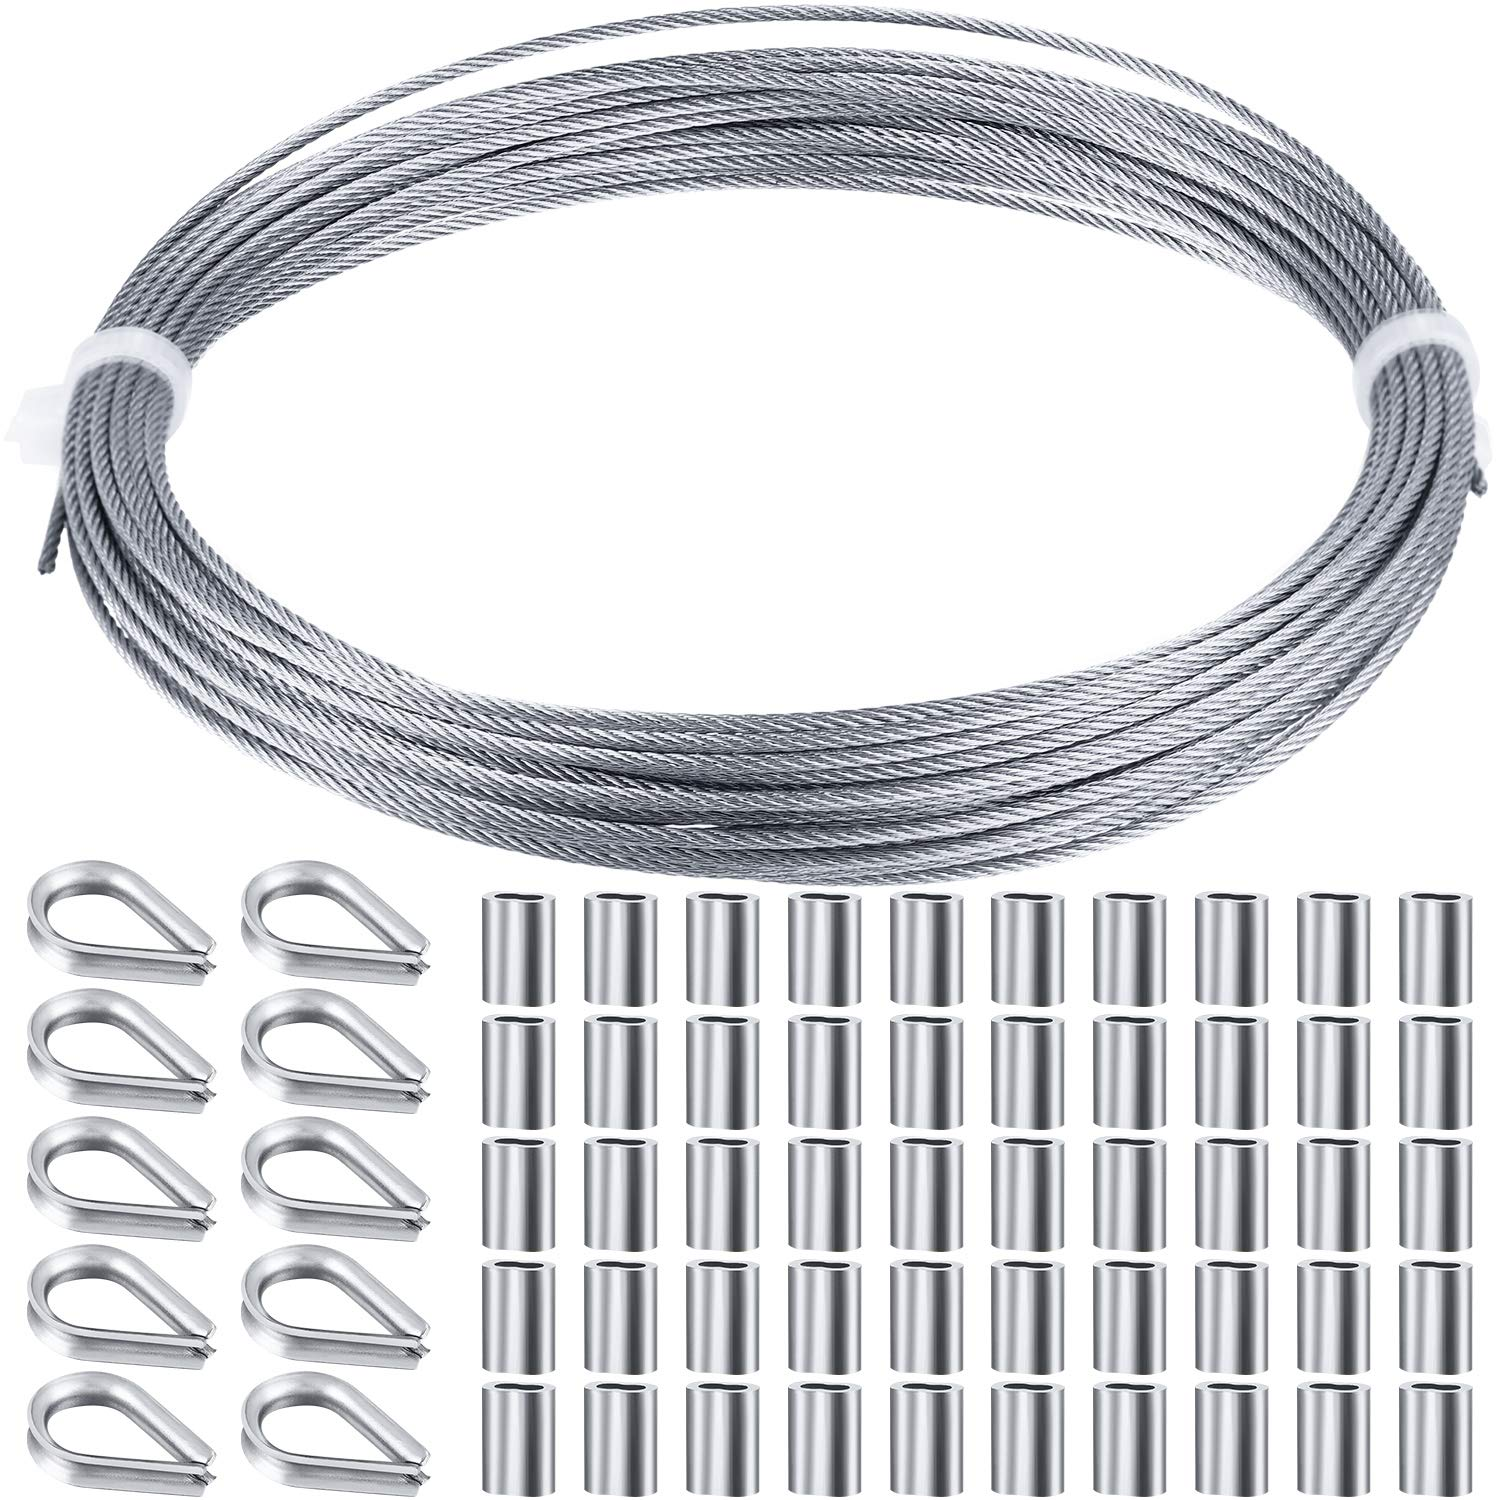 Wire Rope Steel Cable Railing Kits Include Stainless Steel Wire Rope Cable 60, 33 Feet Aluminum Crimping Sleeves and Stainless Steel Thimble for Railing Decking,Picture Hanging Kit